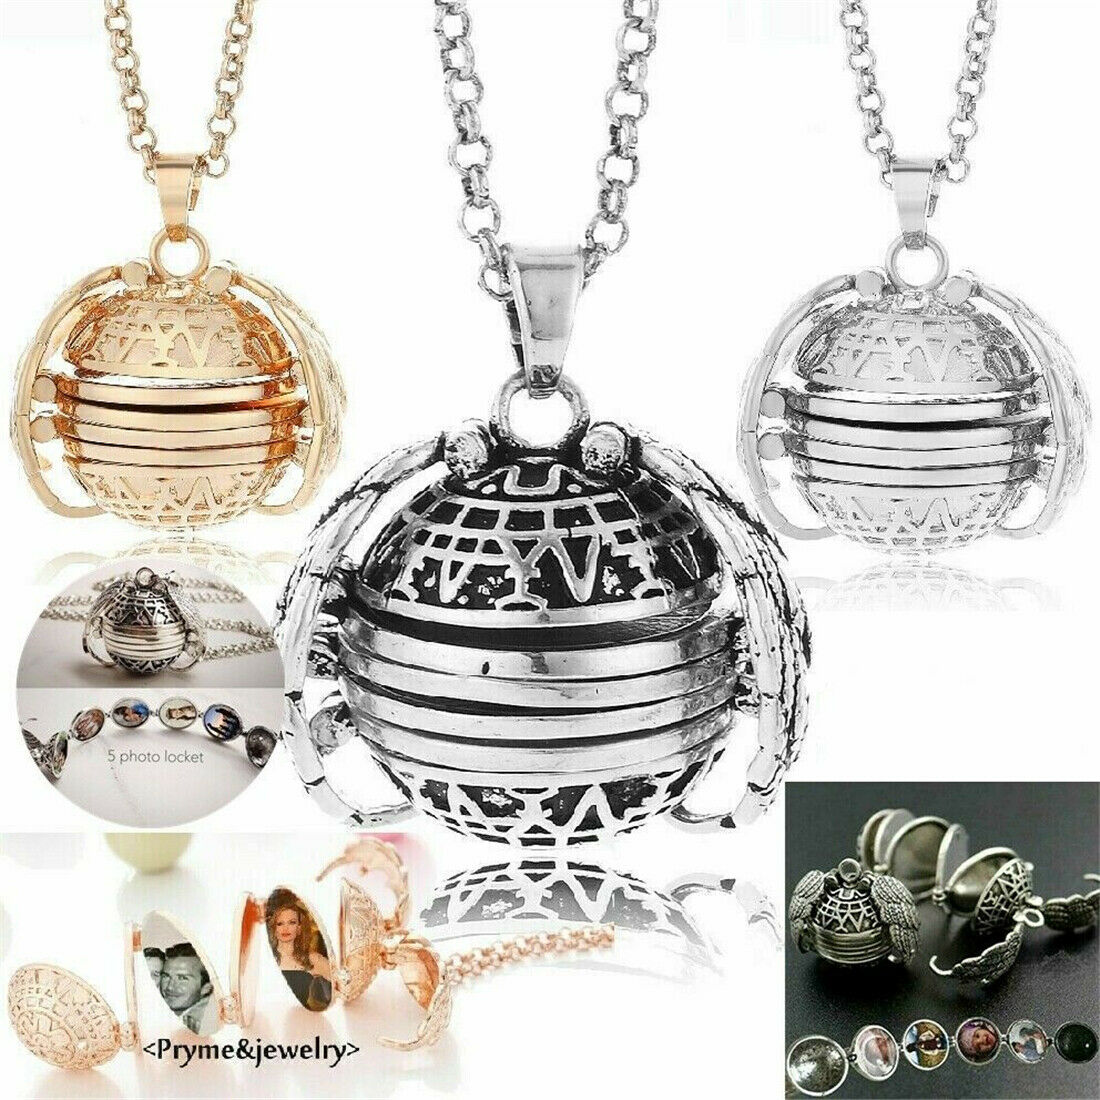 KY Cosplay Unisex Vintage Steampunk Necklaces Vintage Navigation Accessories Pendant